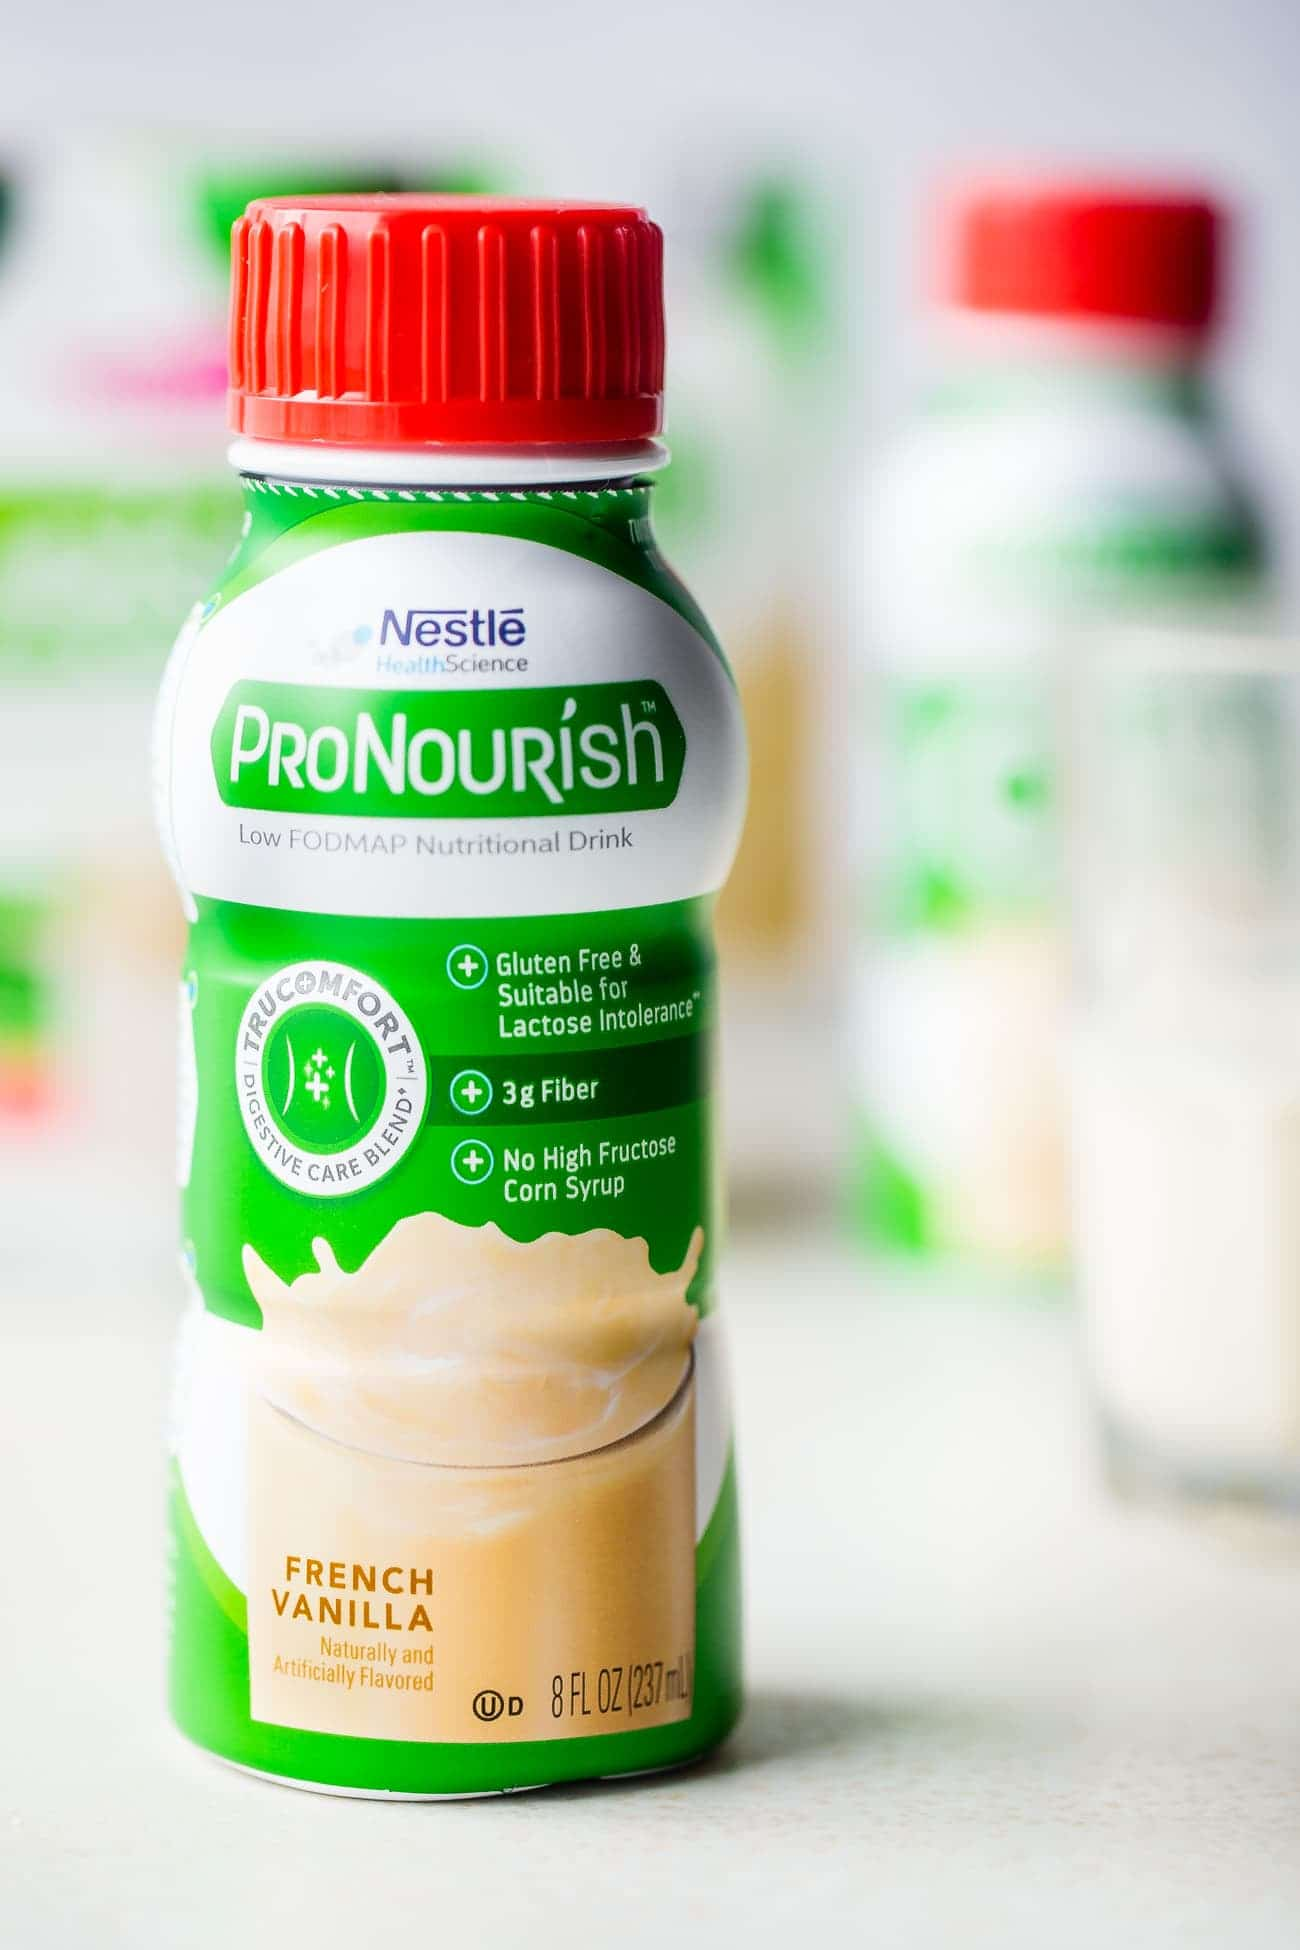 ProNourish - A nutritional drink that is packed with protein and perfect for those on the Low FODMAP diet! | Foodfaithfitness.com | @FoodFaithFit